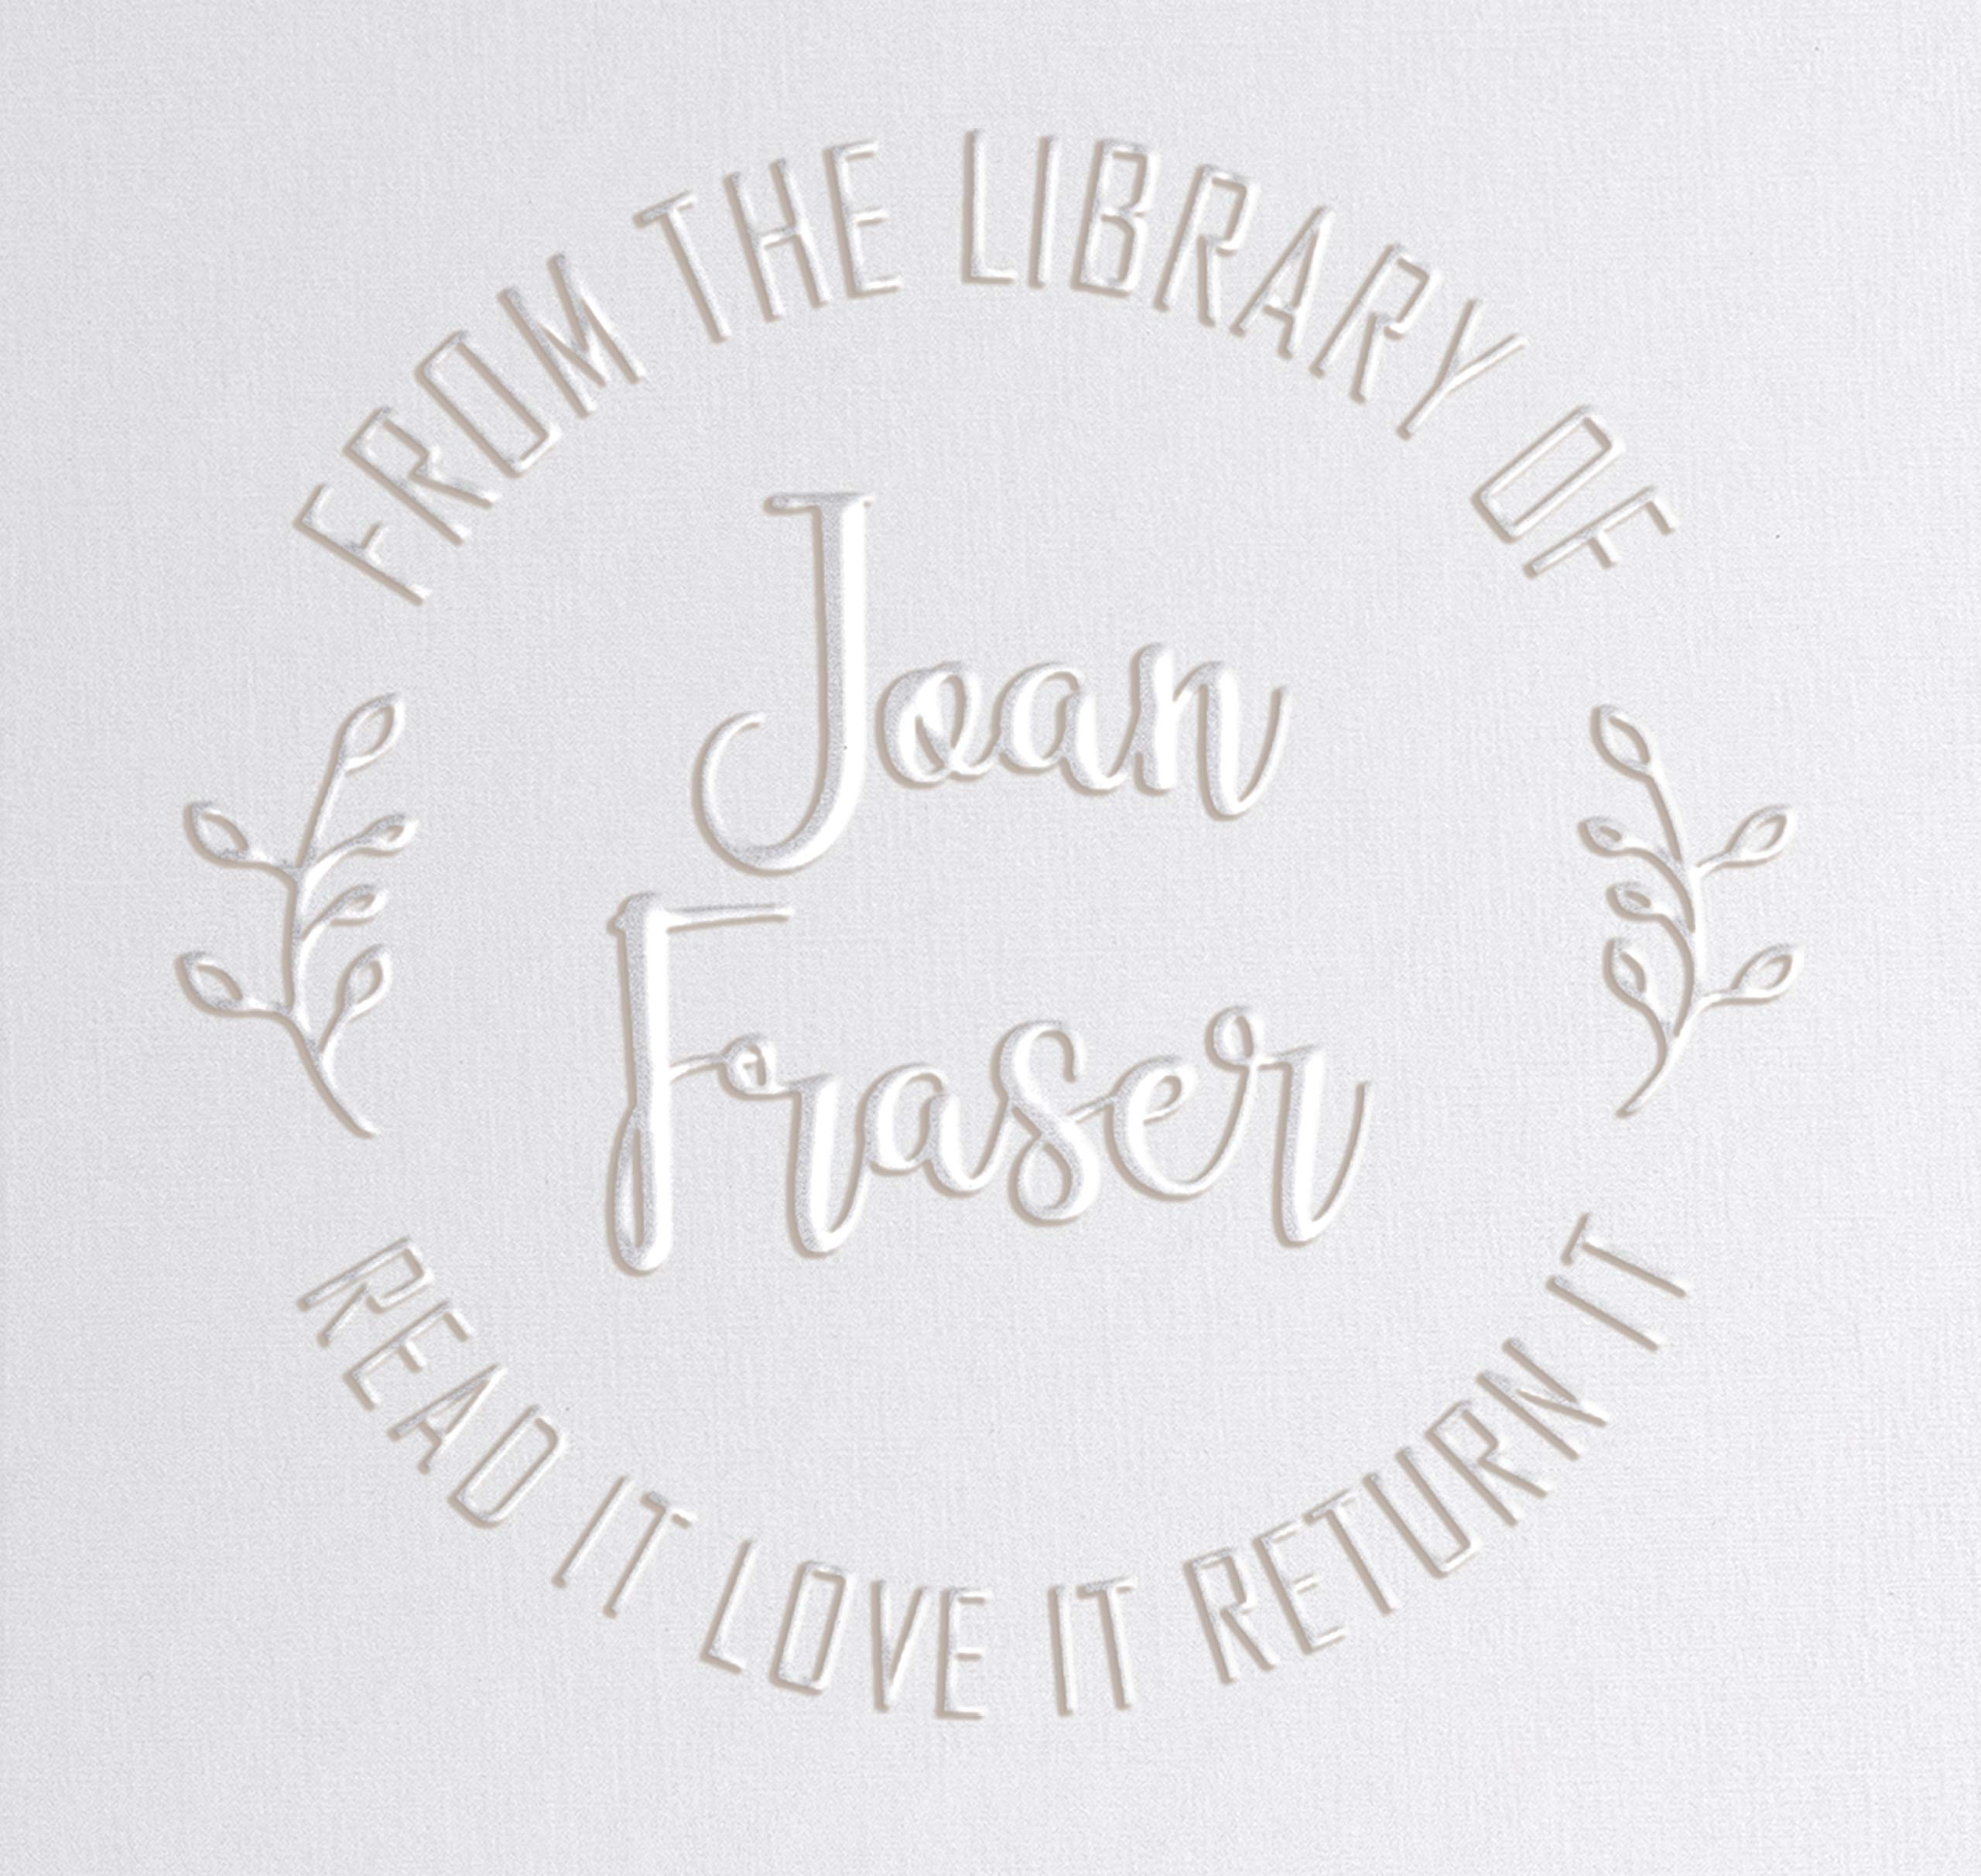 Library Book Embosser Seal Stamp Personalized Customized 1 x 5/8'' (Fern) by Pickled Stamps